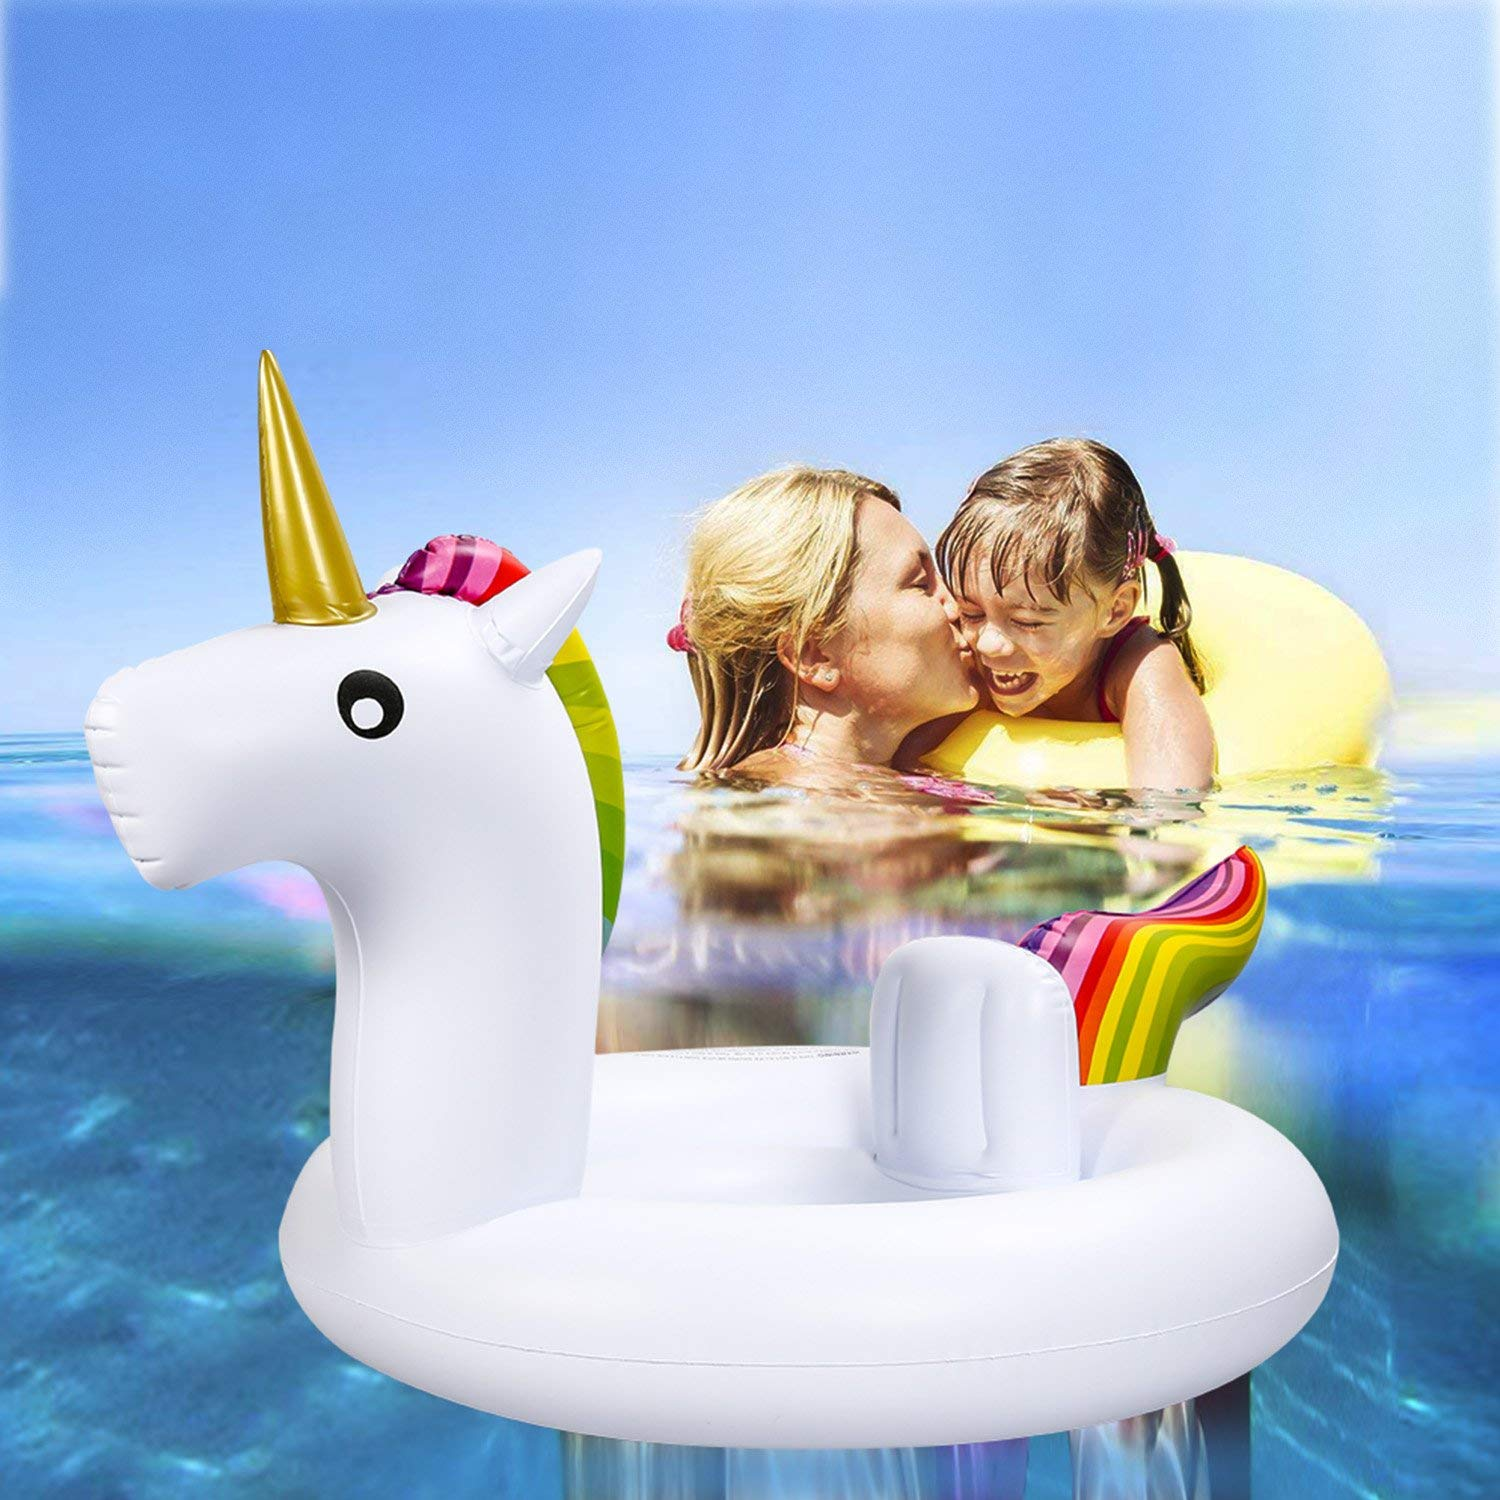 Soyoekbt Baby Inflatable Pool Float with Safety Seat Toddler Inflatable Swimming Ring for Kids White Swan Float